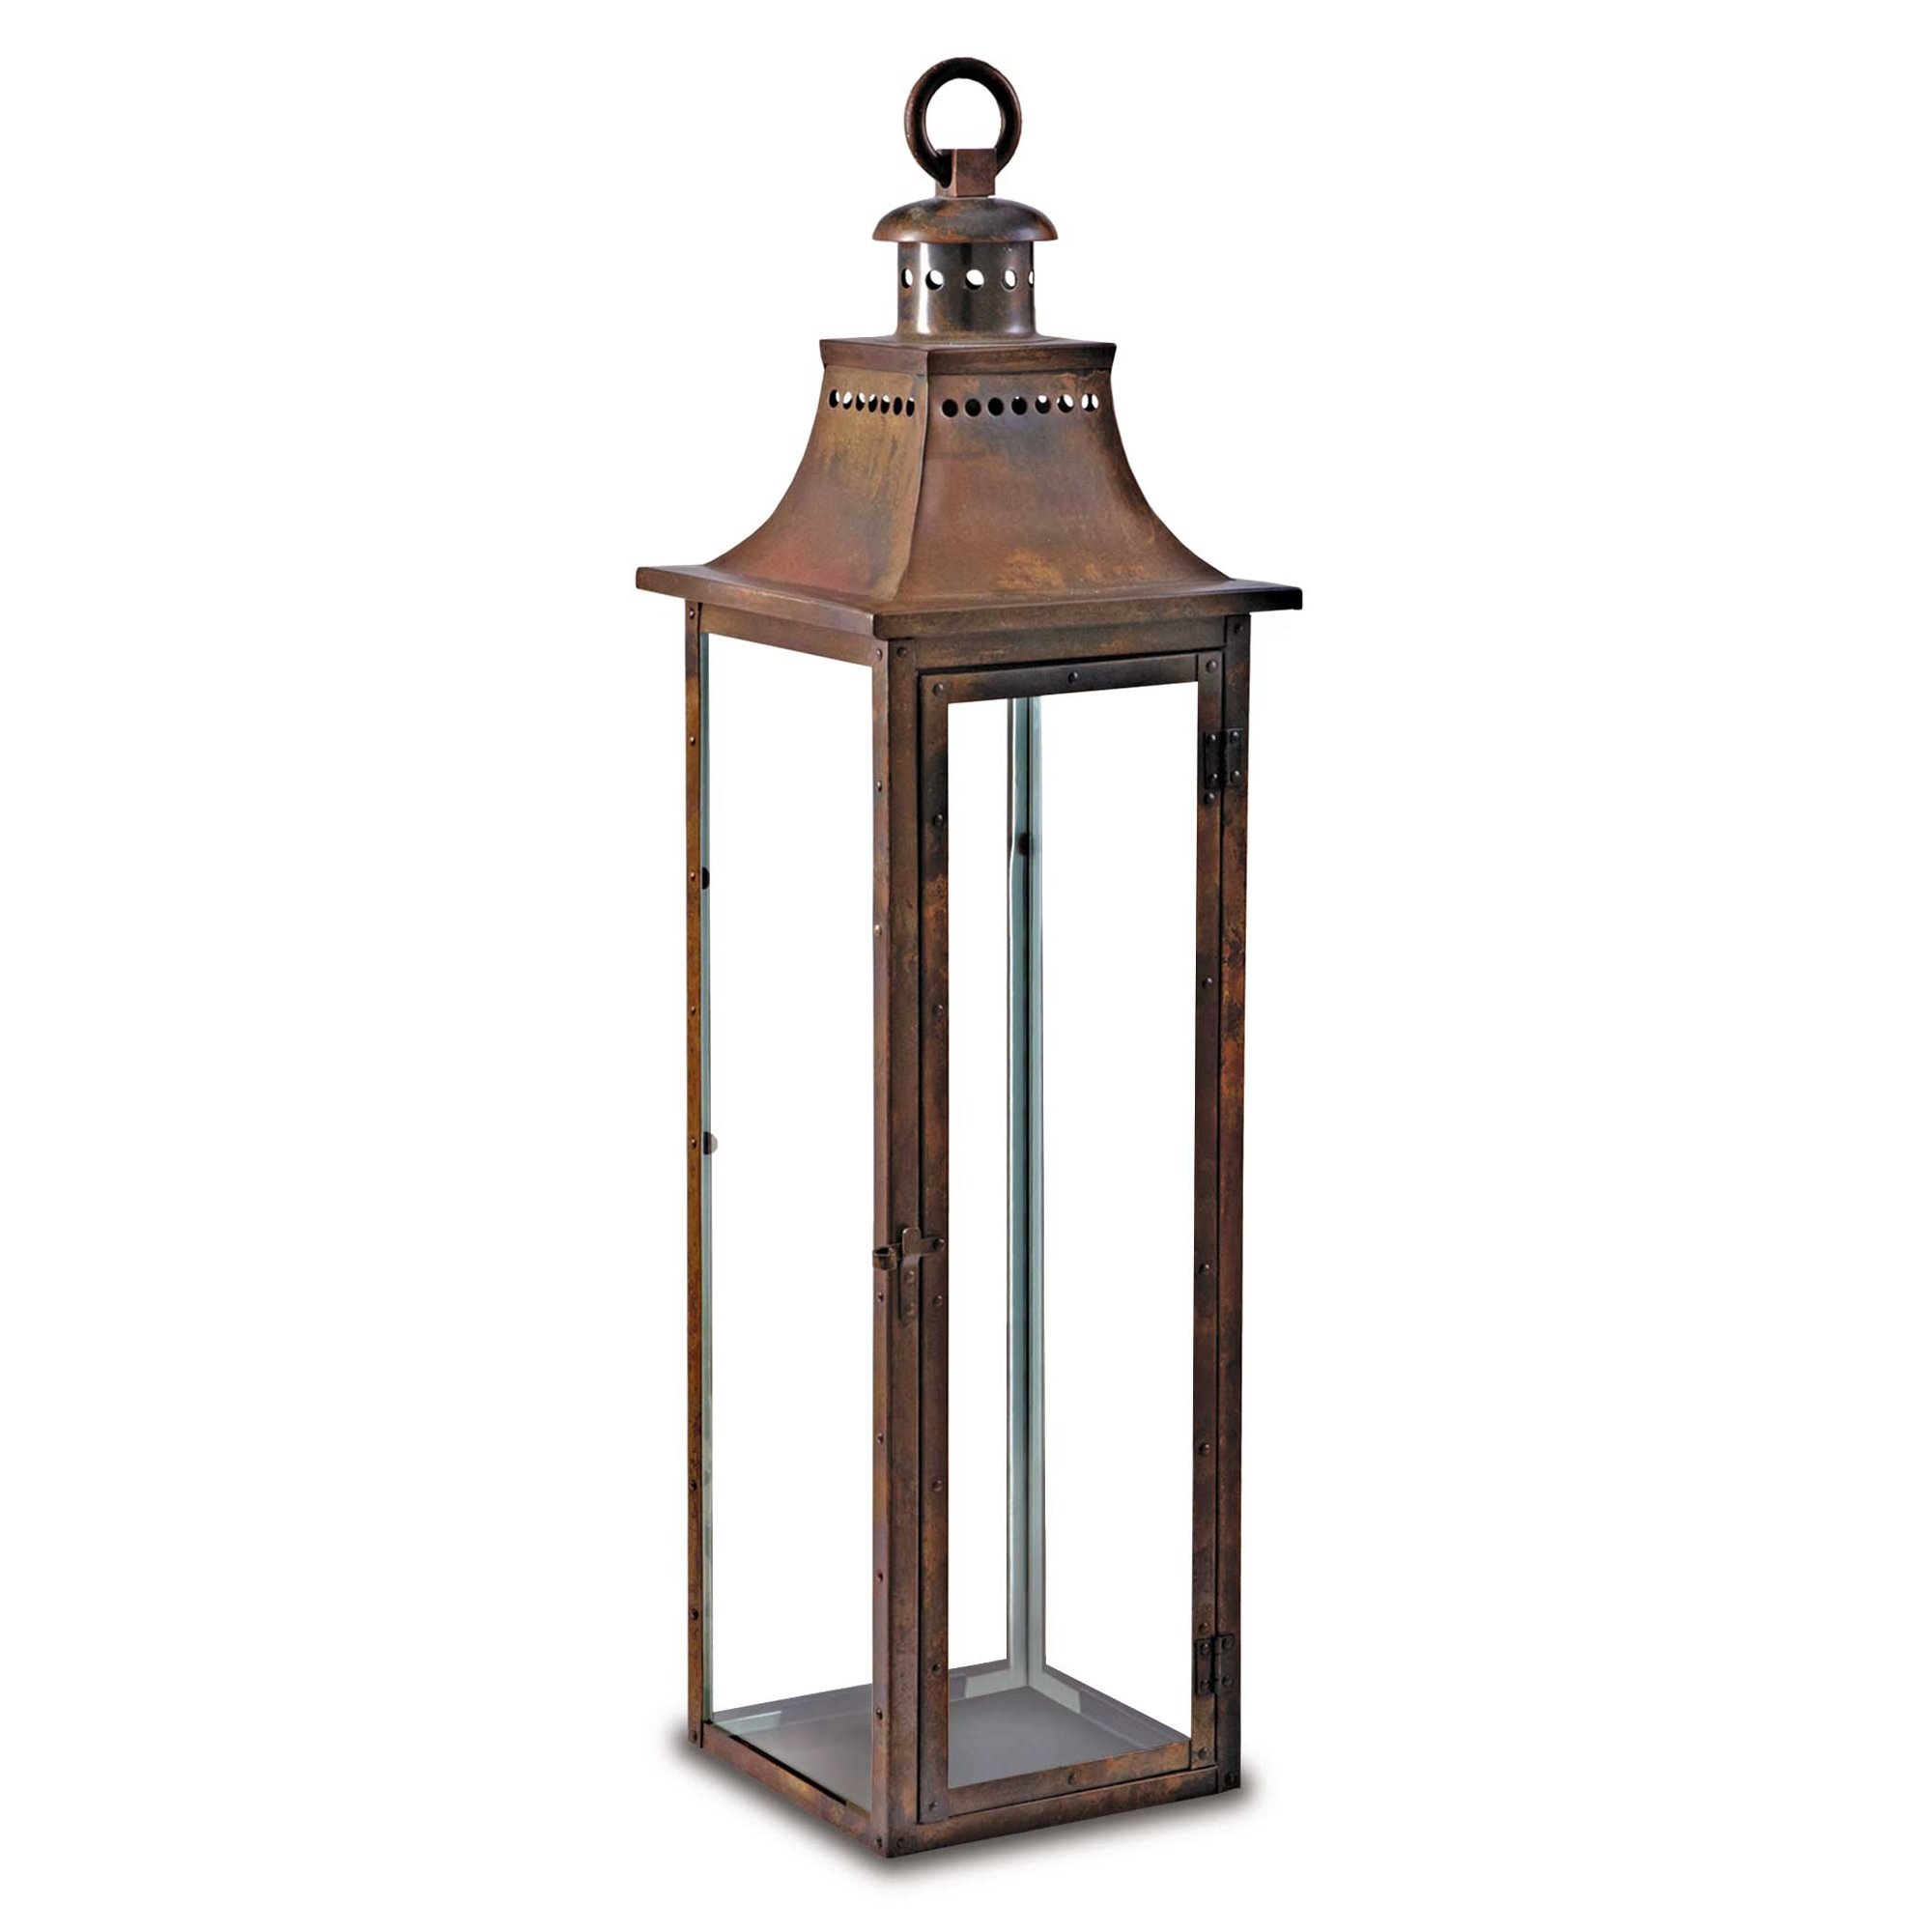 Pilgrim Home and Hearth 17537 Hampton Tall Candle Lantern, Distressed Copper / Stainless Steel, 9 x 36''